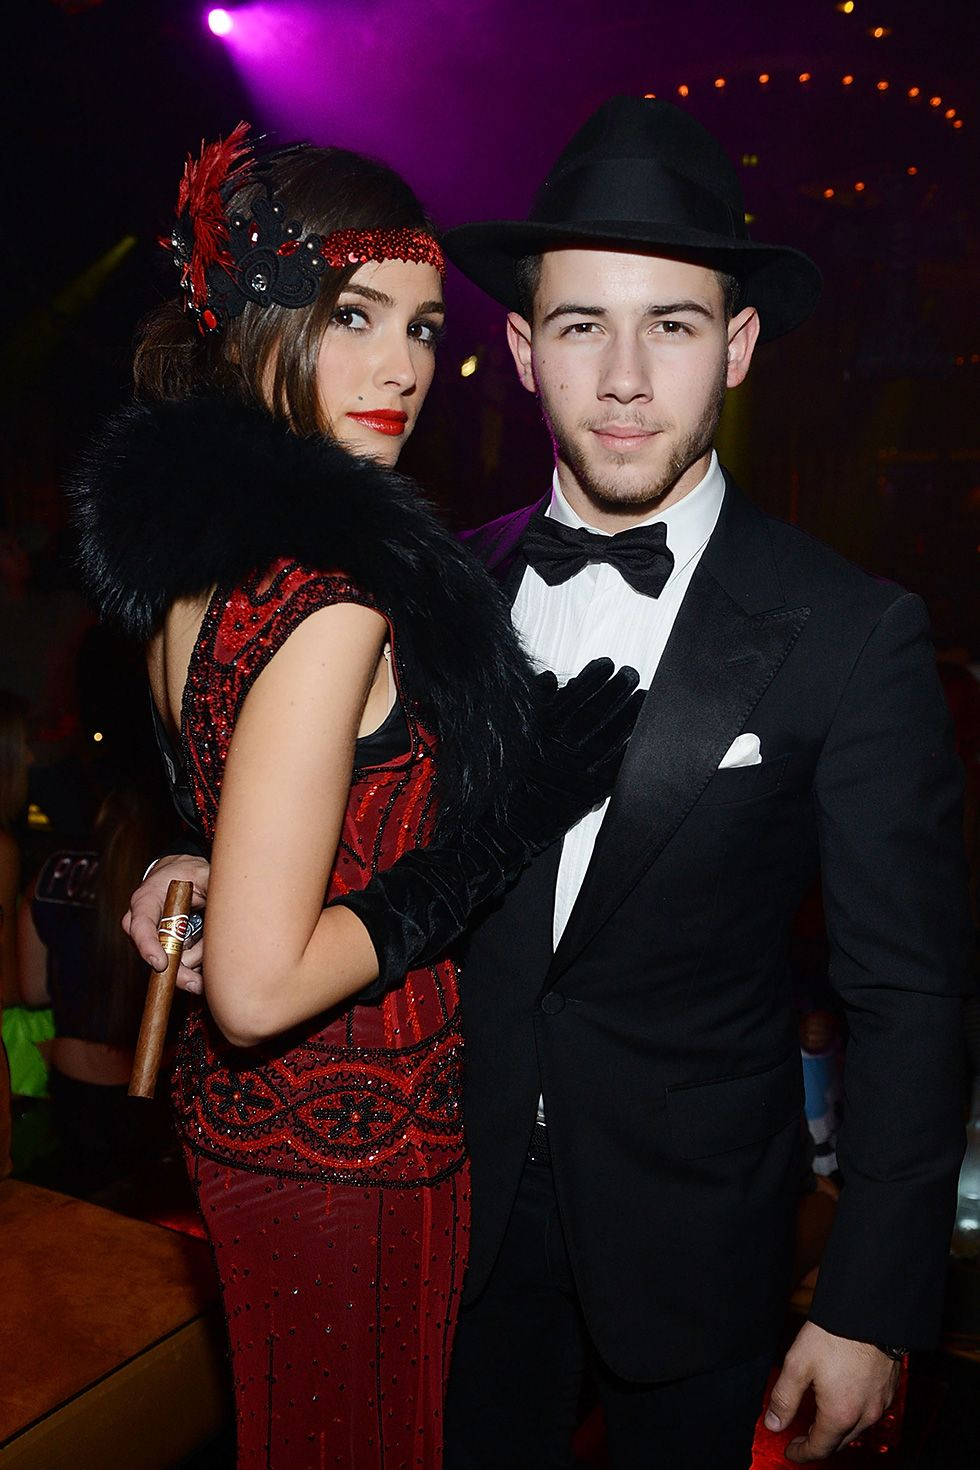 Olivia Culpo and Nick Jonas - 1920s Folks In 2014, Olivia Culpo and Nick Jonas rocked their best 1920s flapper and mobster look for the Halloween costume party contest at the Mirage Hotel and Casino in Las Vegas, Nevada.